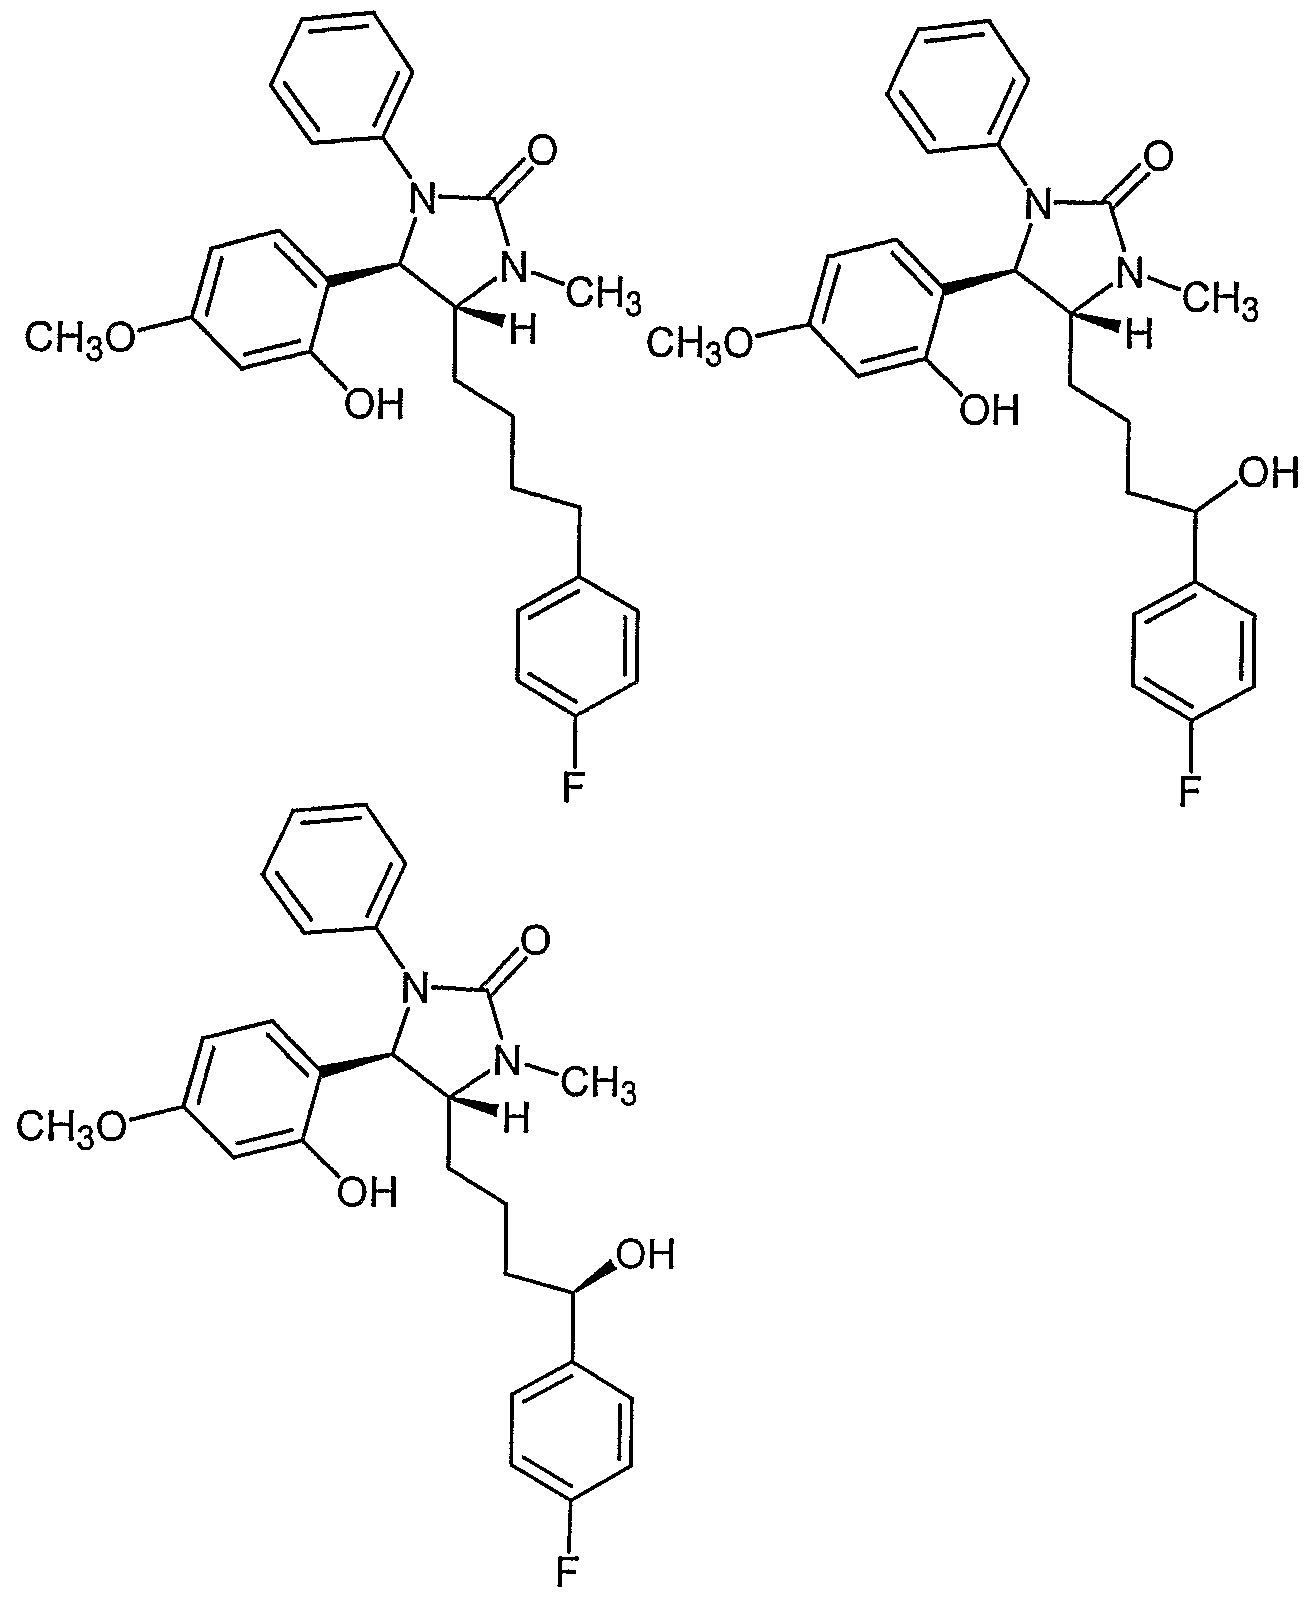 wo2006102674a2 diphenylheterocycle cholesterol absorption 3 Phase Panel Wiring Diagram figure imgf000051 0001